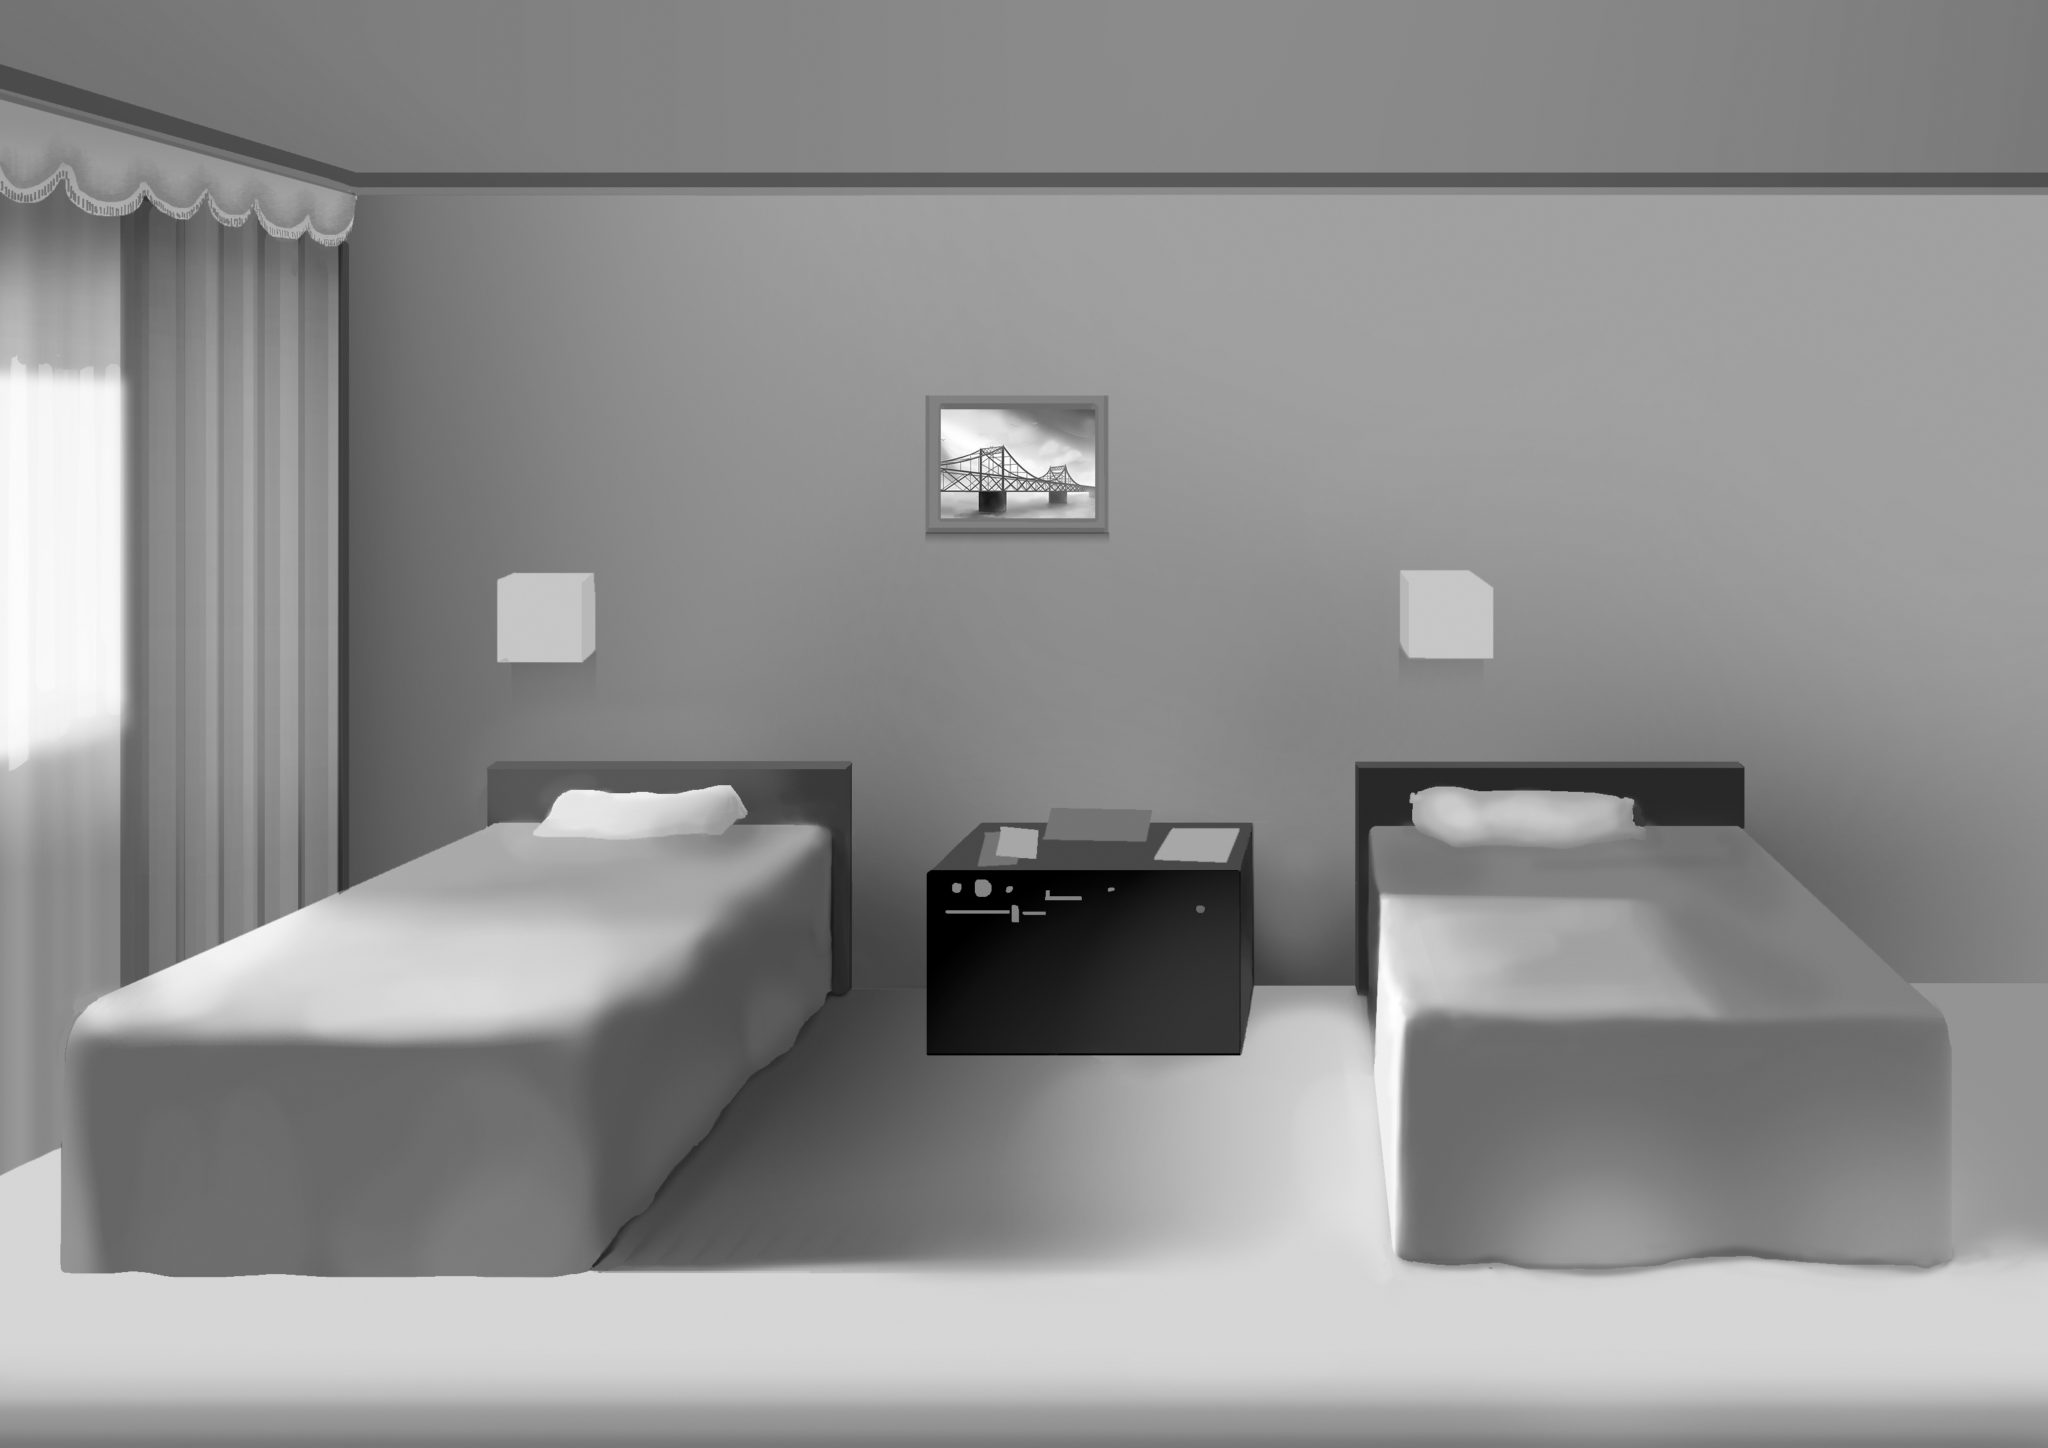 Graphically drawn image of a hotel bedroom with two beds and a bedside table between. The image has a film-noir-esque aesthetic.